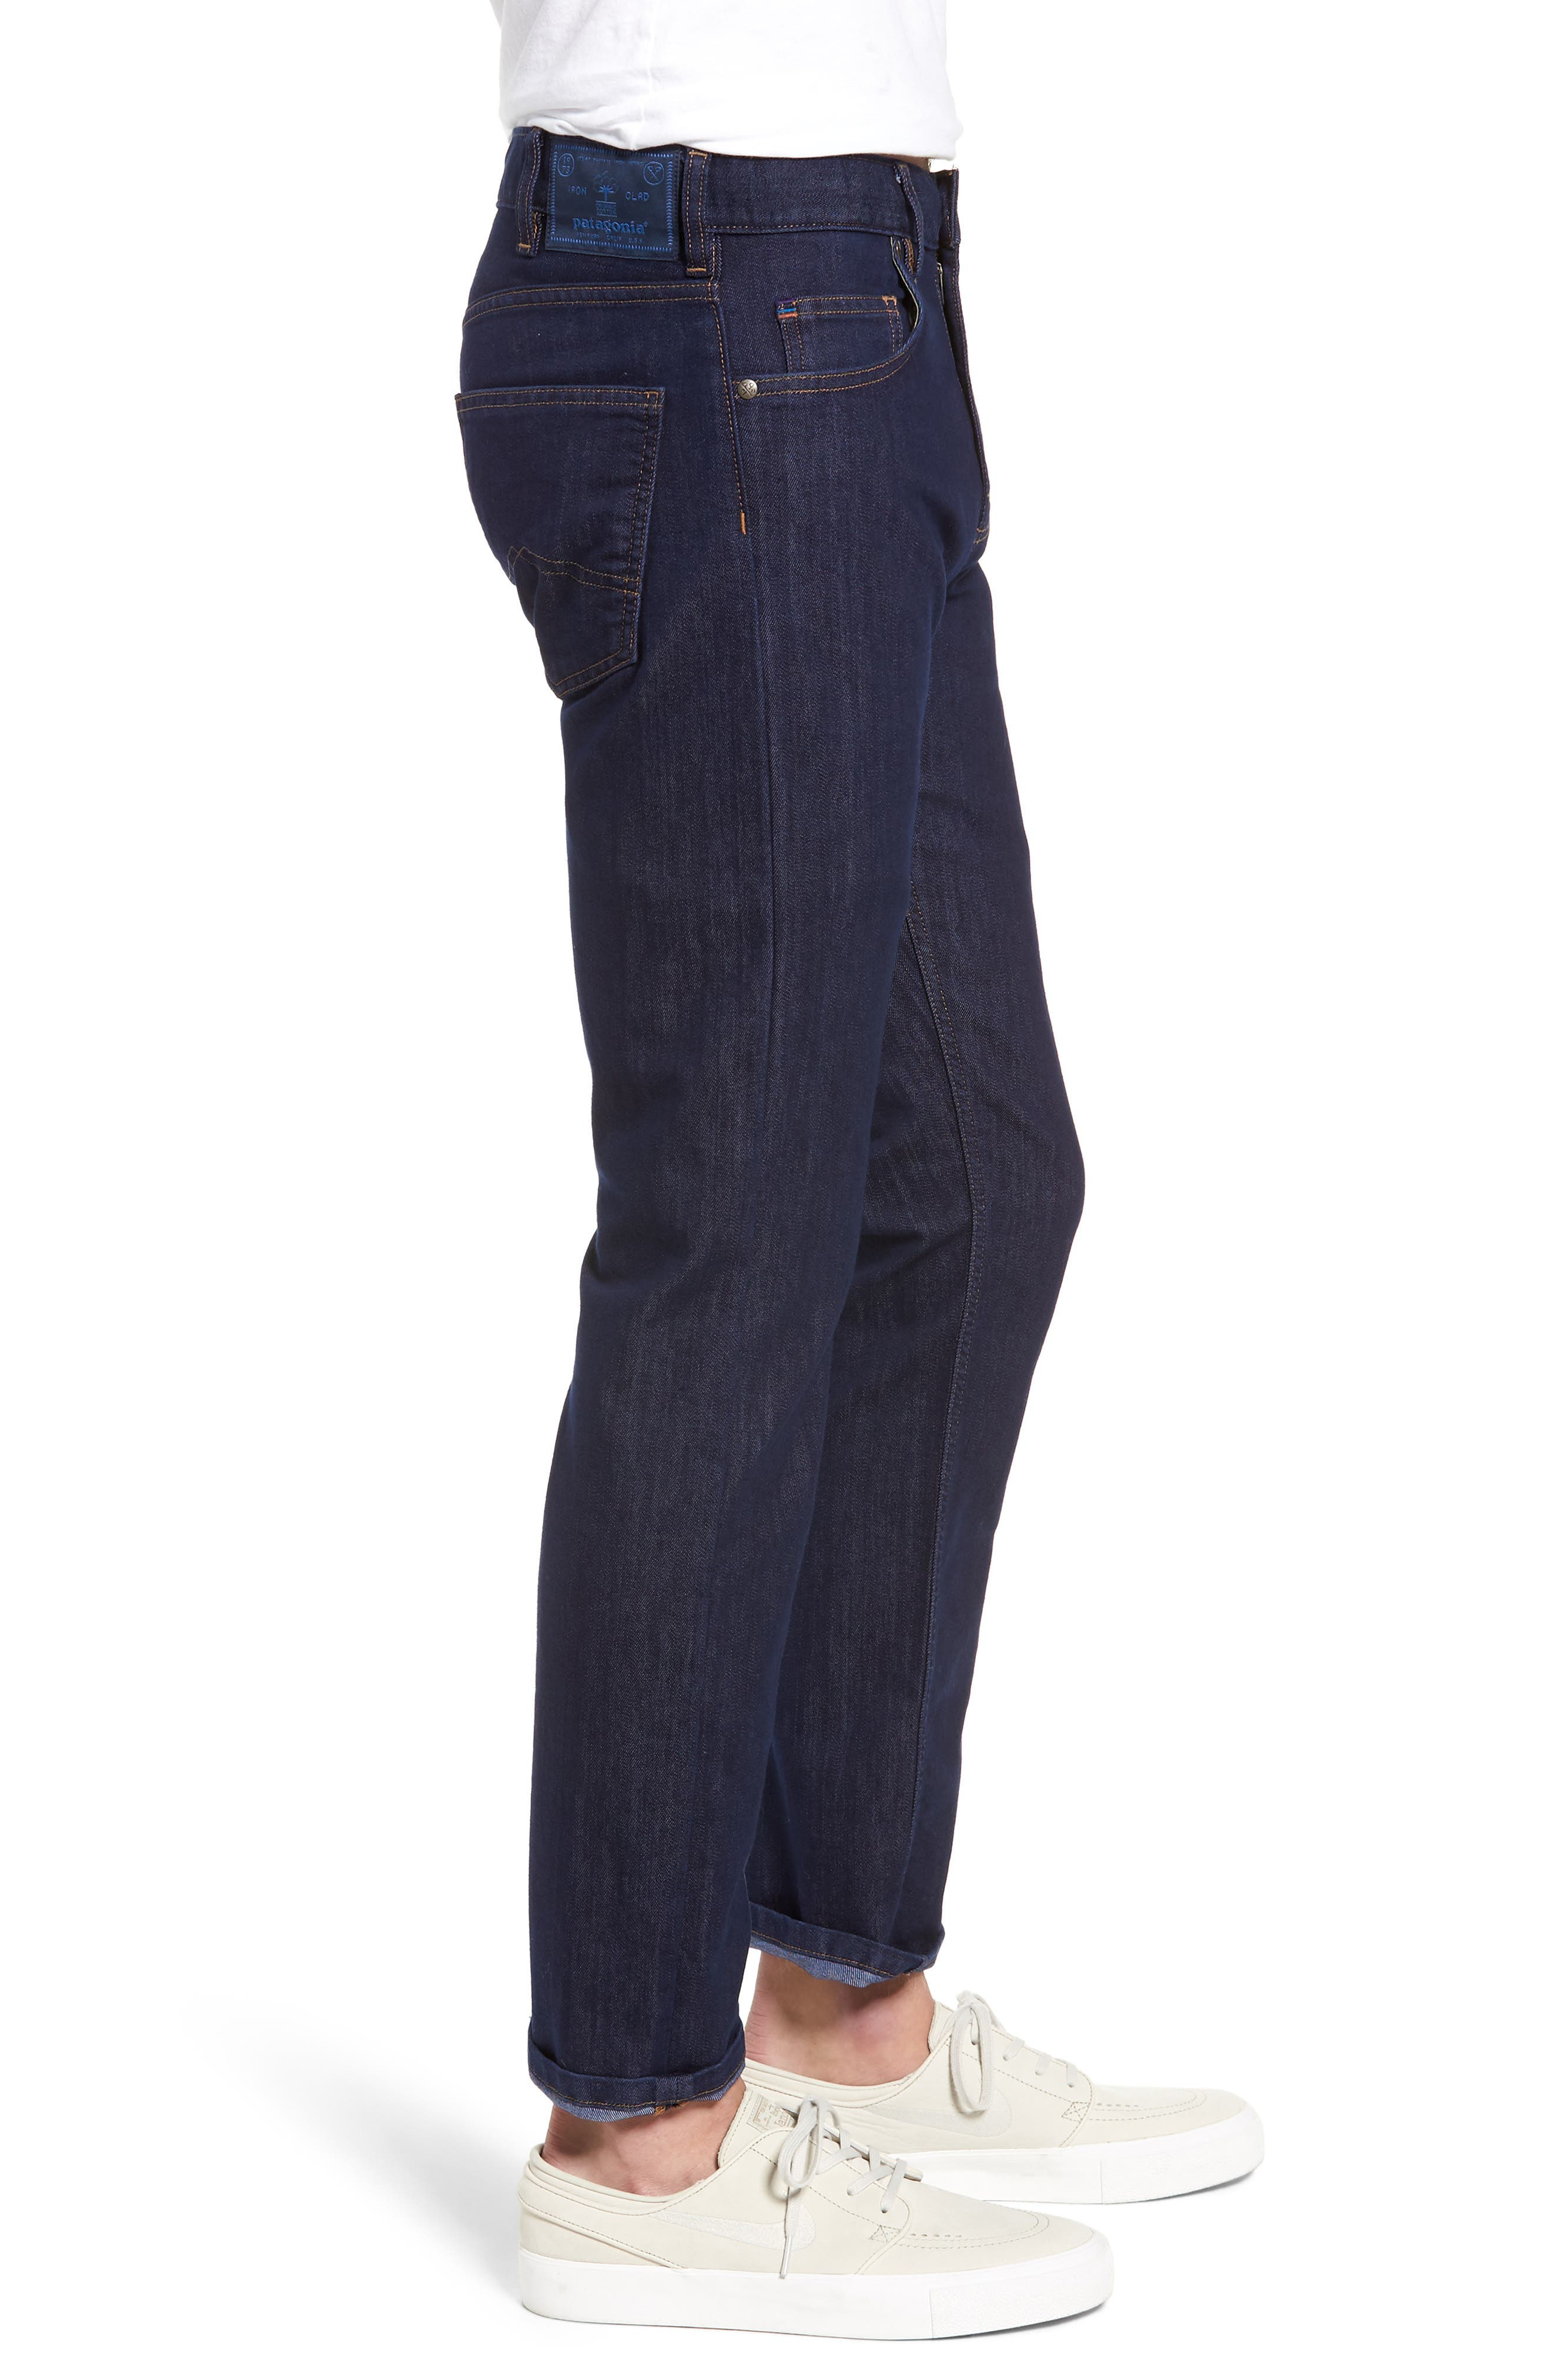 Straight Leg Performance Jeans,                             Alternate thumbnail 3, color,                             DARK DENIM